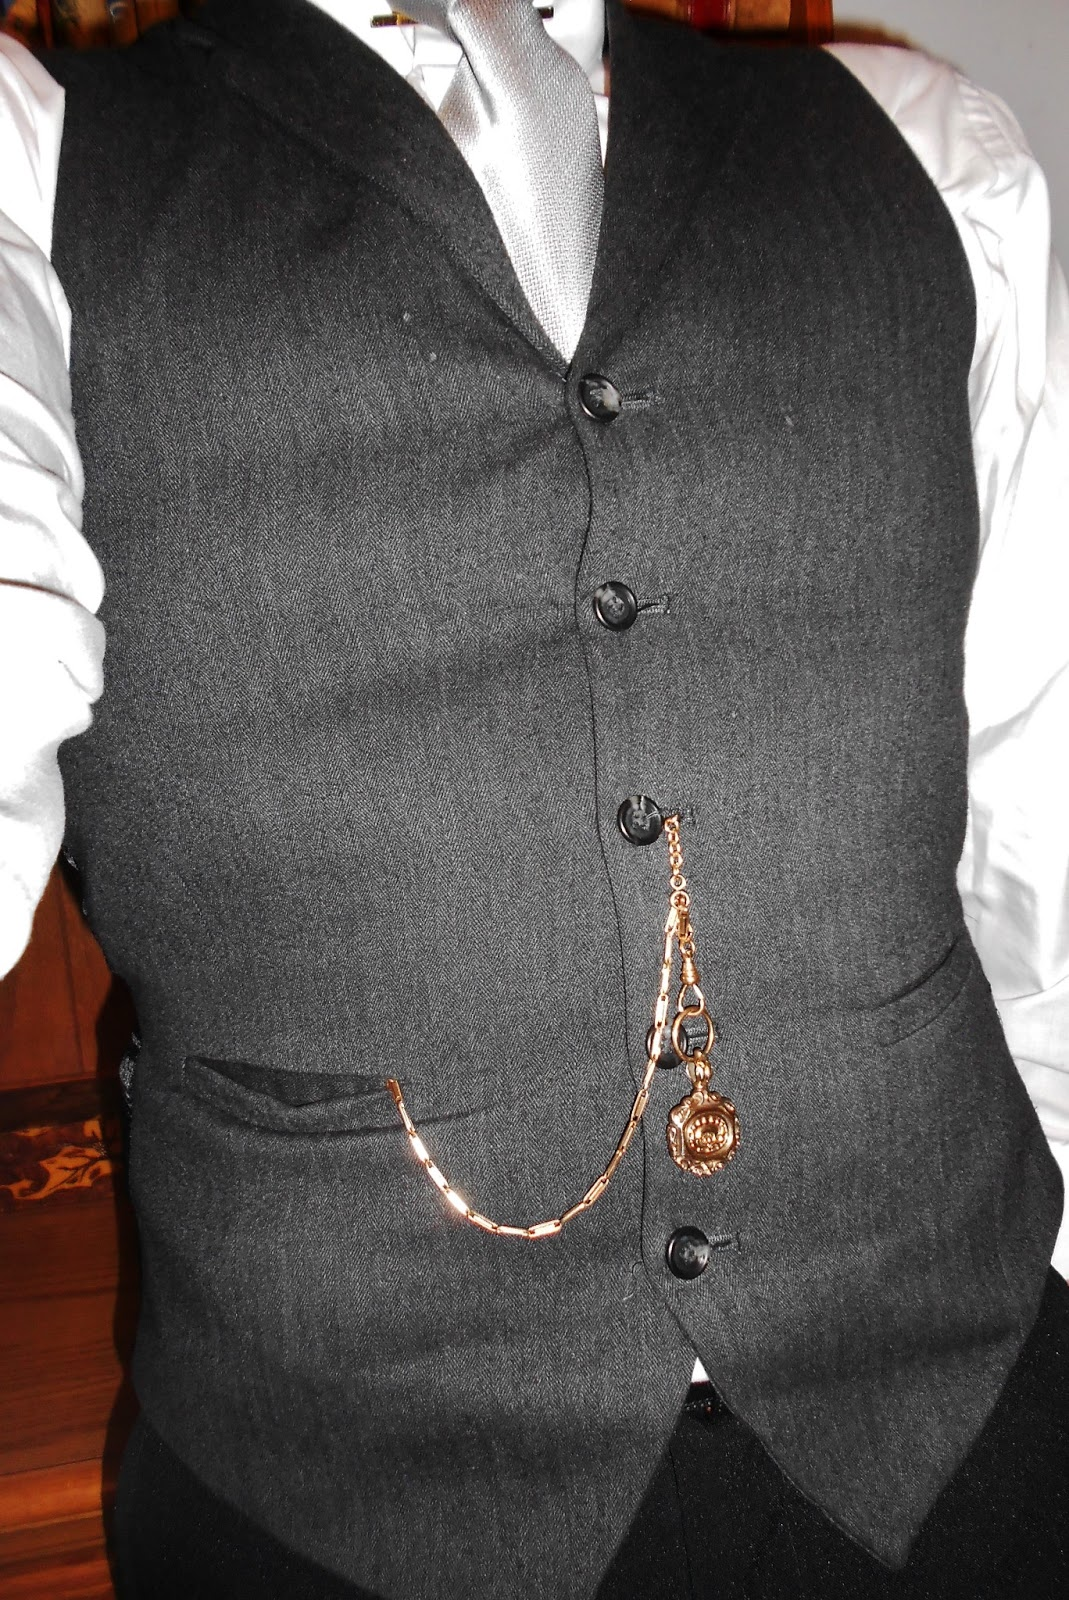 The Polished Monocle Pocket Watch Panache